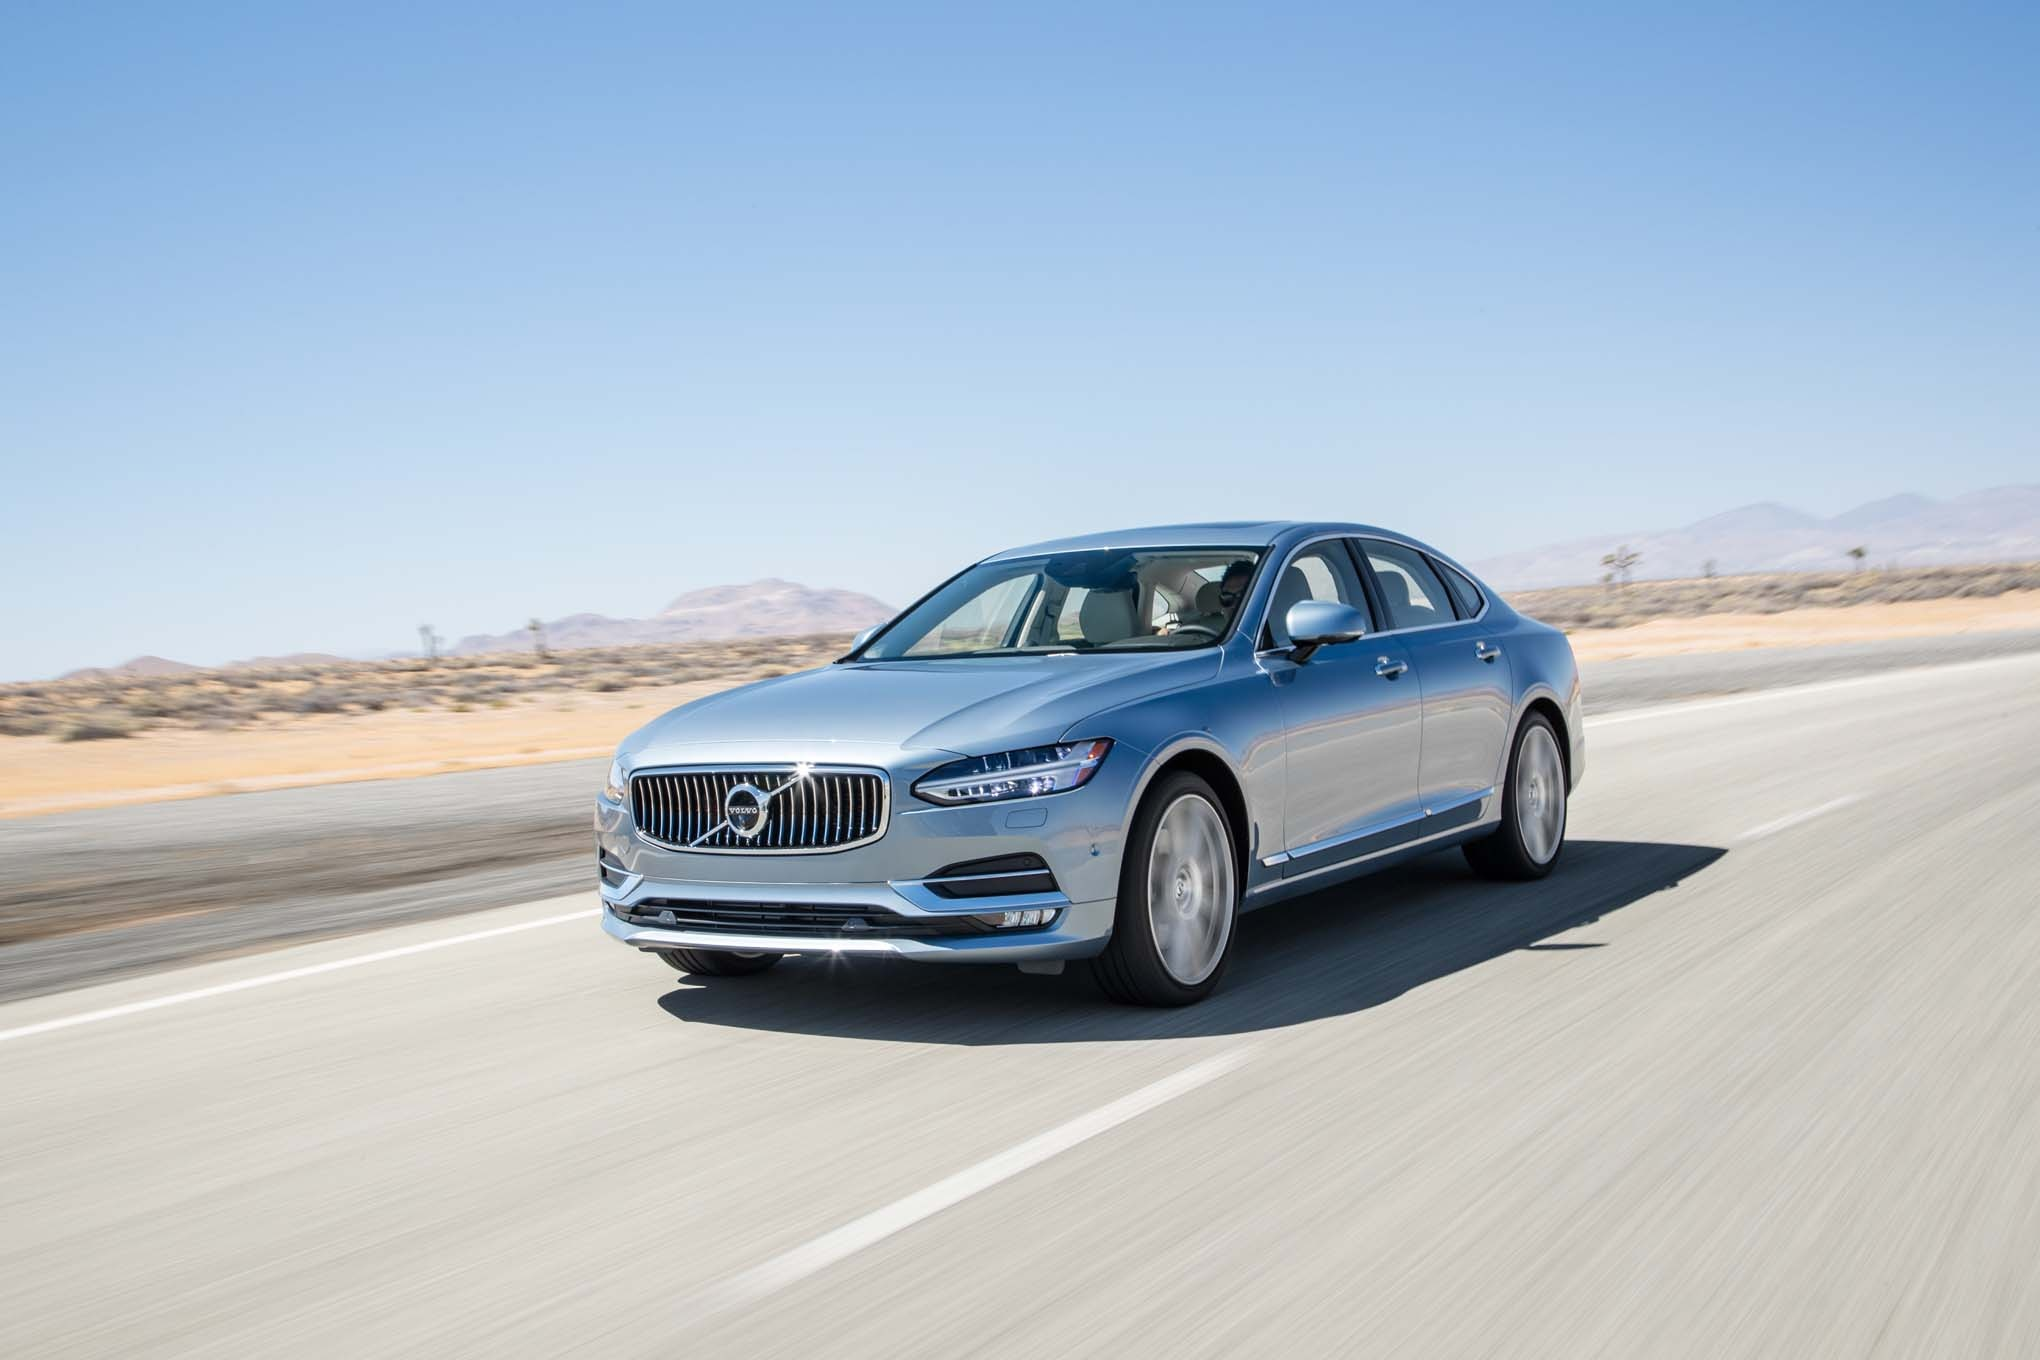 2017 Volvo S90 T6 AWD Inscription front three quarter in motion 02